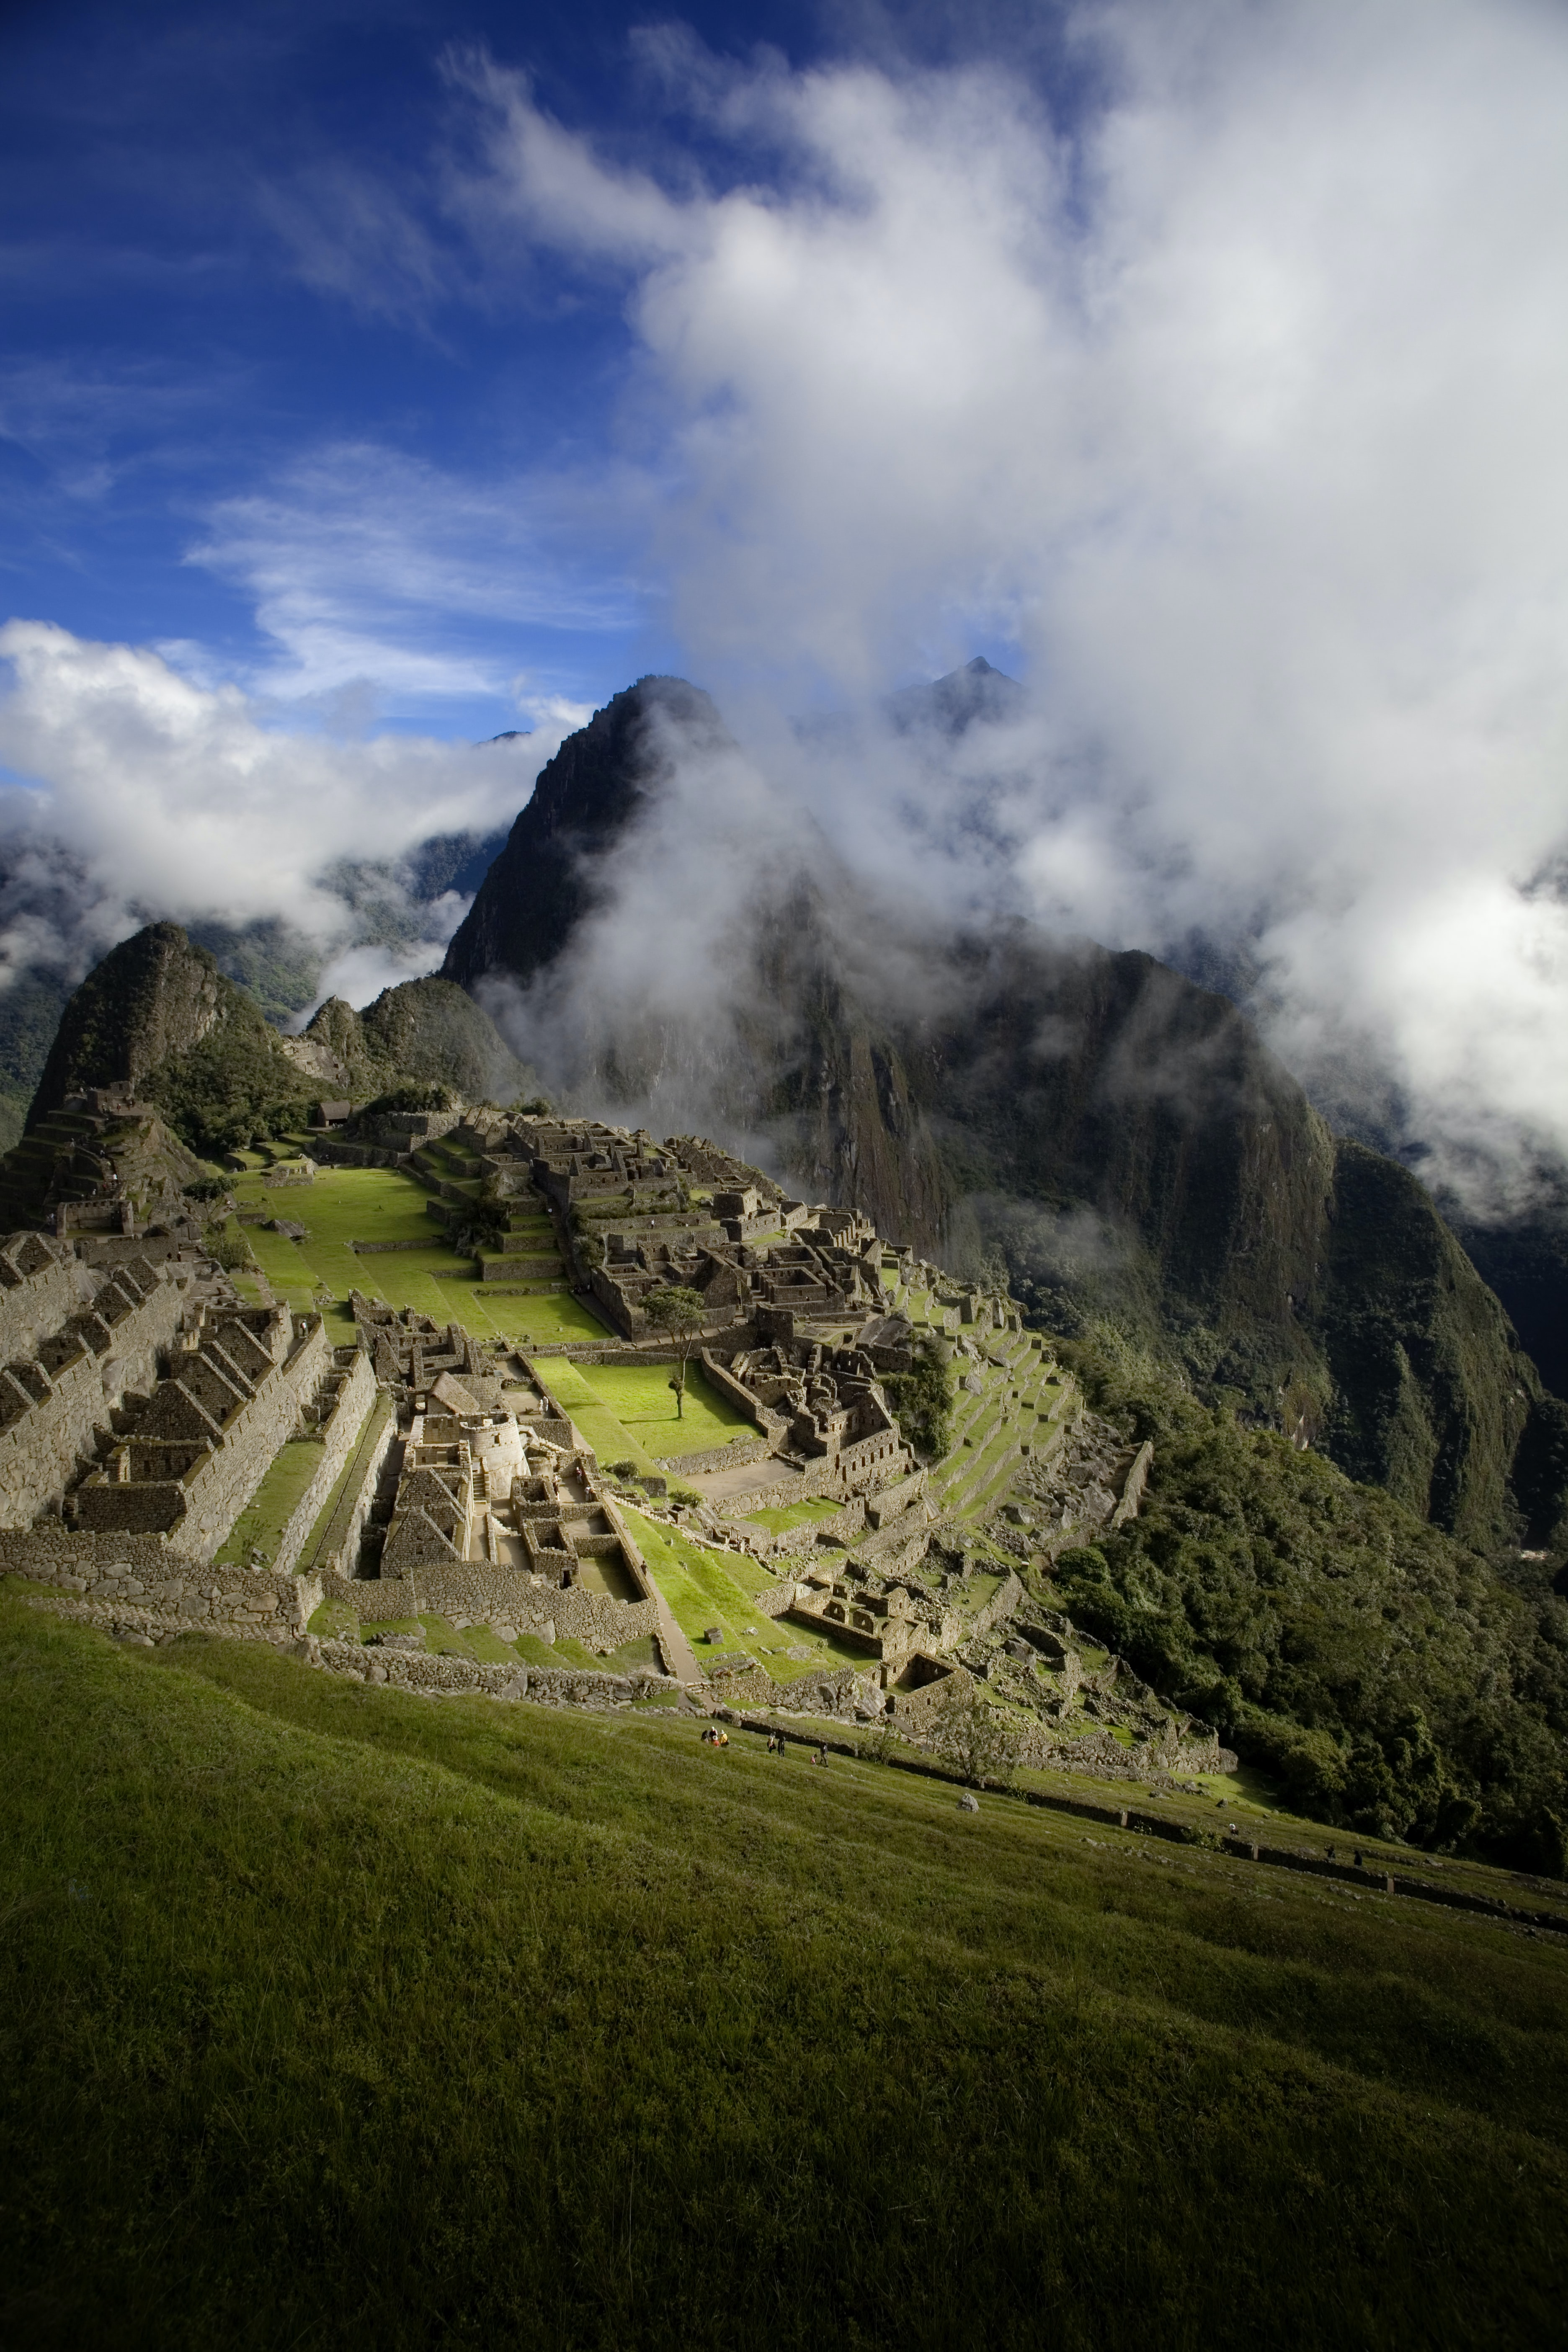 Cloudy day overlooking the ruins of Machu Picchu